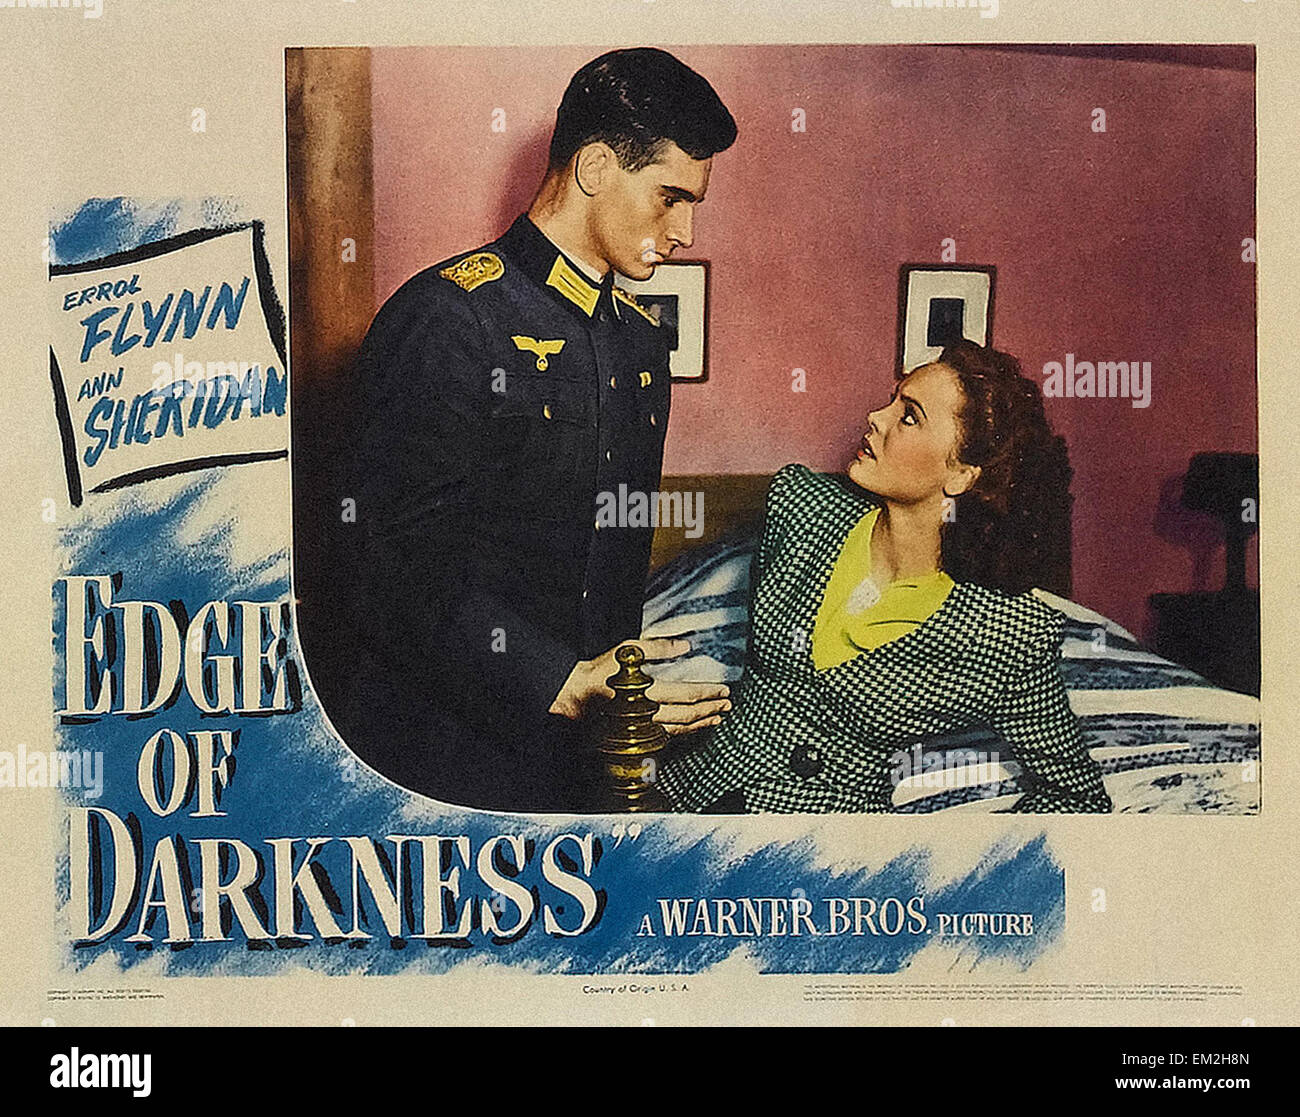 Edge of Darkness  - Movie Poster - Stock Image